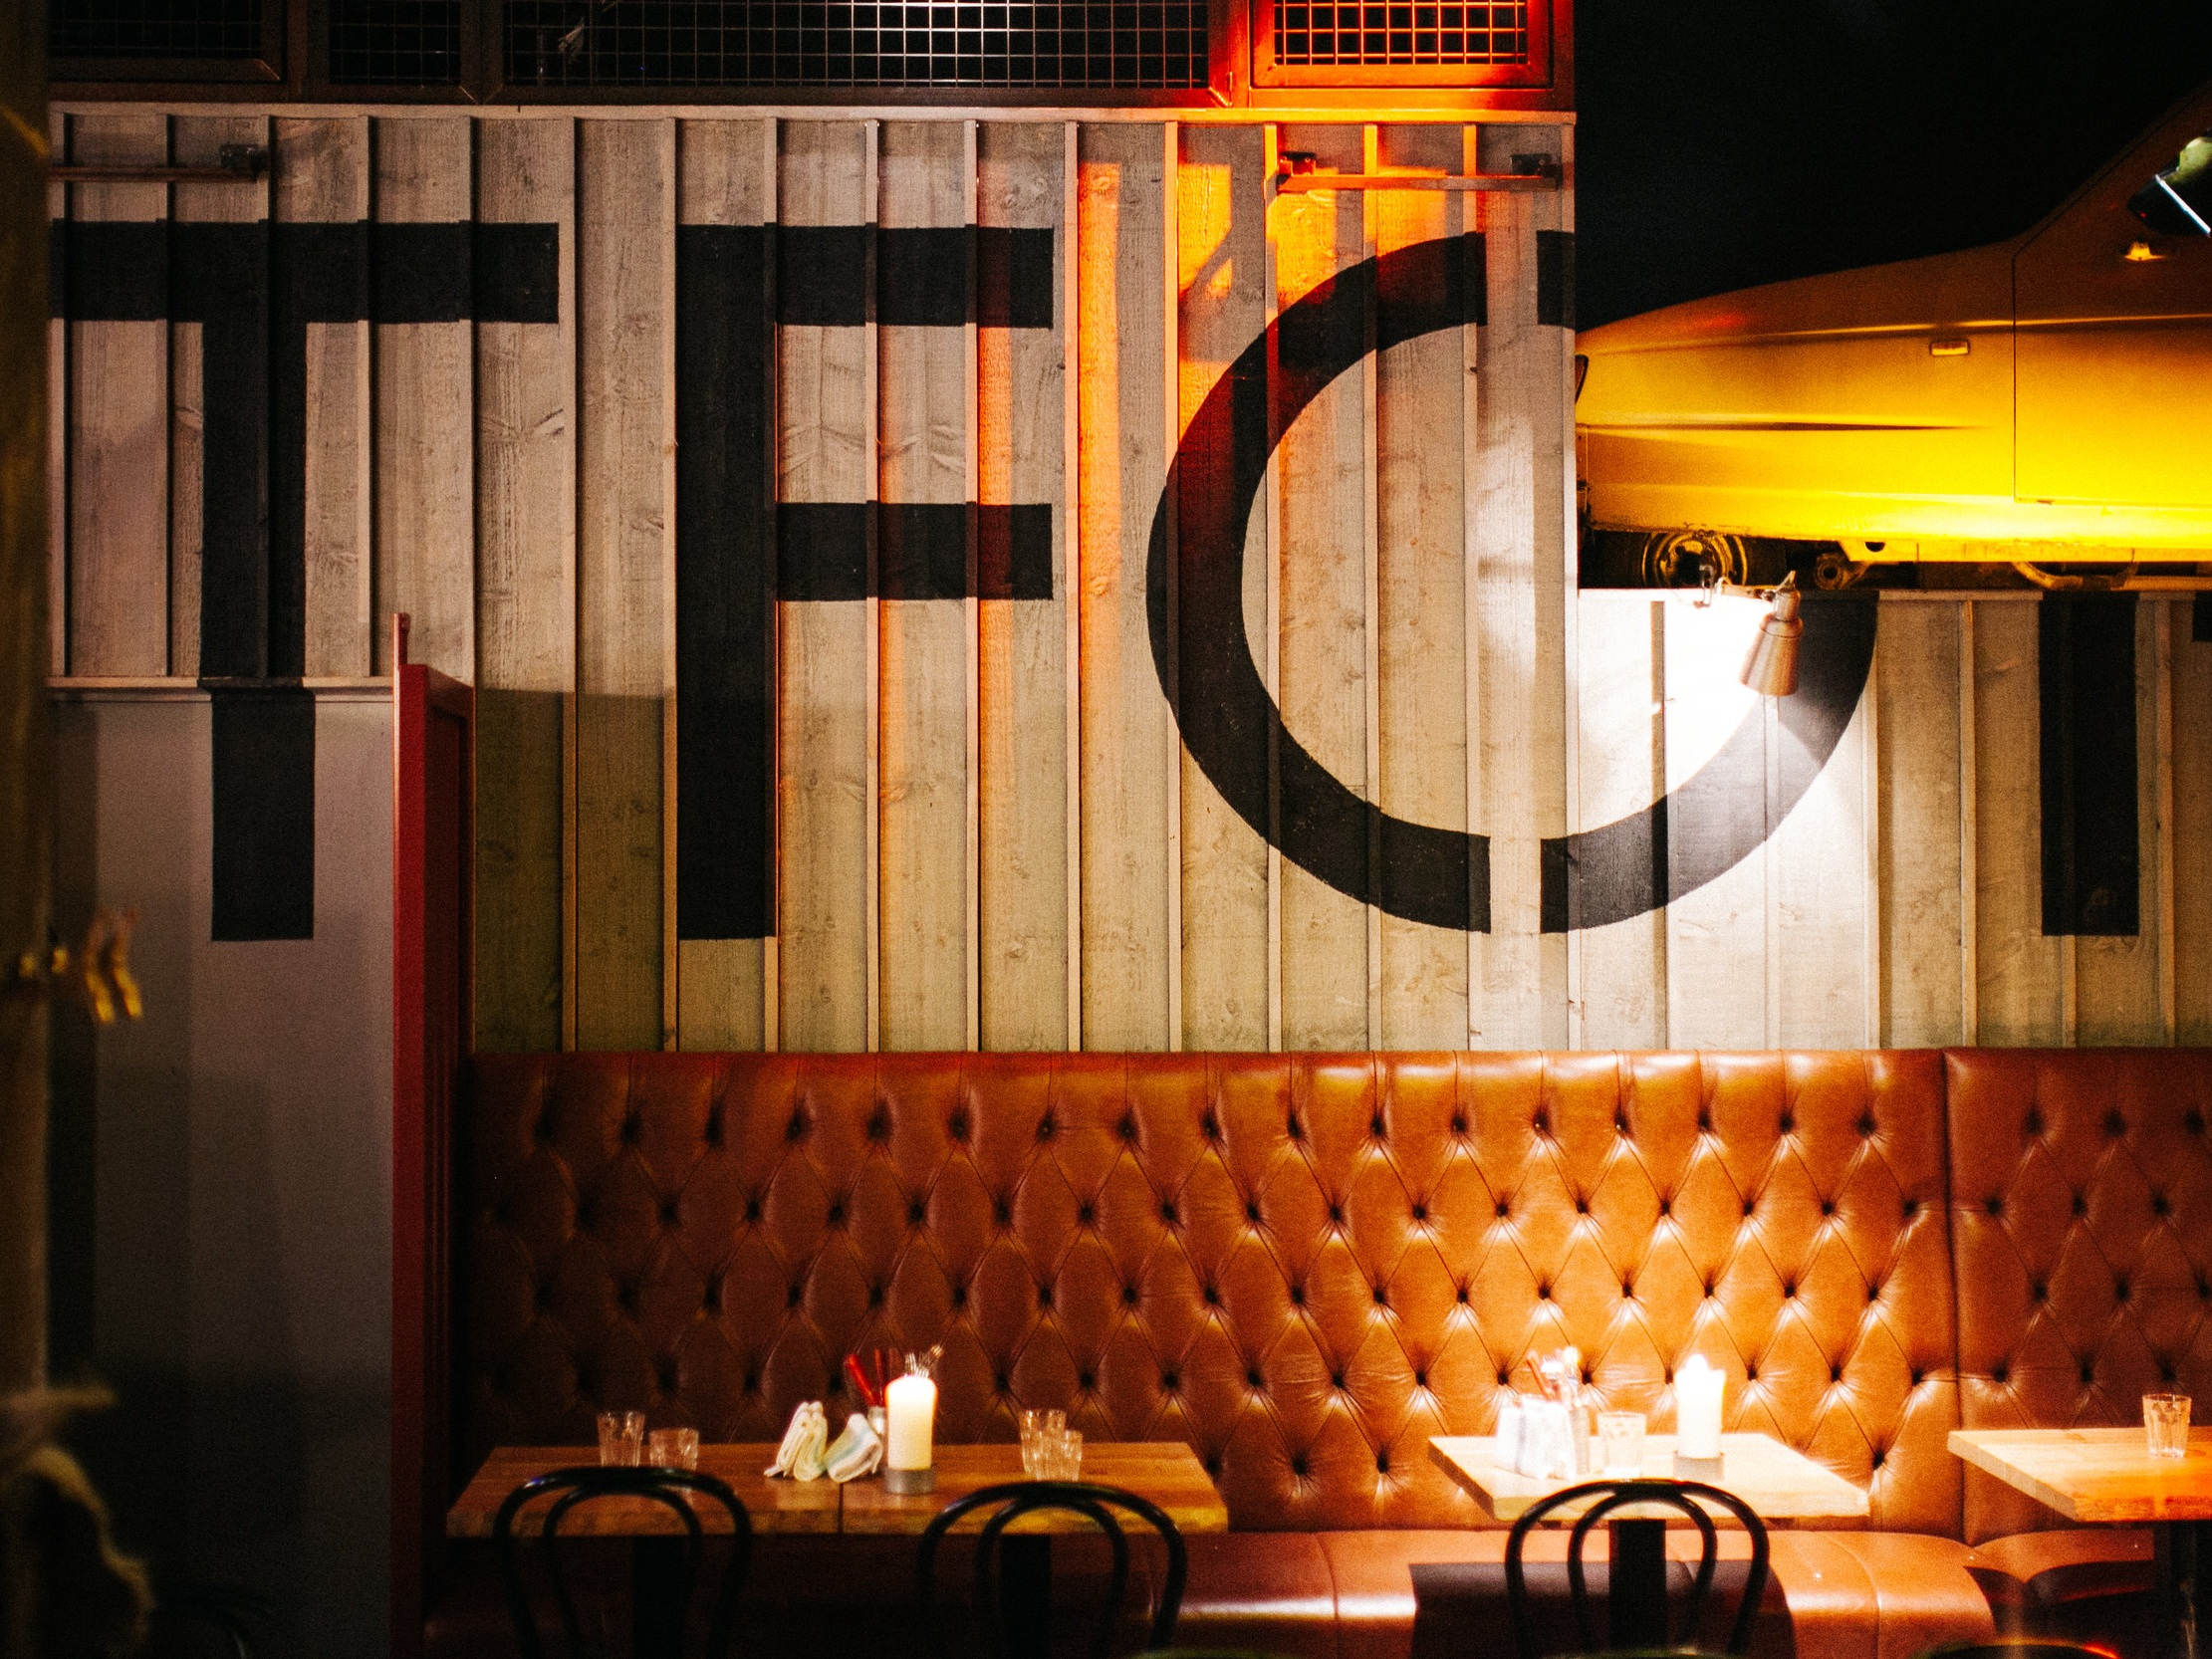 ESCAPE THE OFFICE - Our quiet, intimate back- of- house area makes the perfect setting for lunch with a client, brainstorming sessions and office days out.Pre-order ahead and we'll have your lunch ready and ready on your arrival - helping you get full value out of your time away from the desk.Simply click 'Pre-order your lunch' when making your online booking.(12-4pm, midweek only)